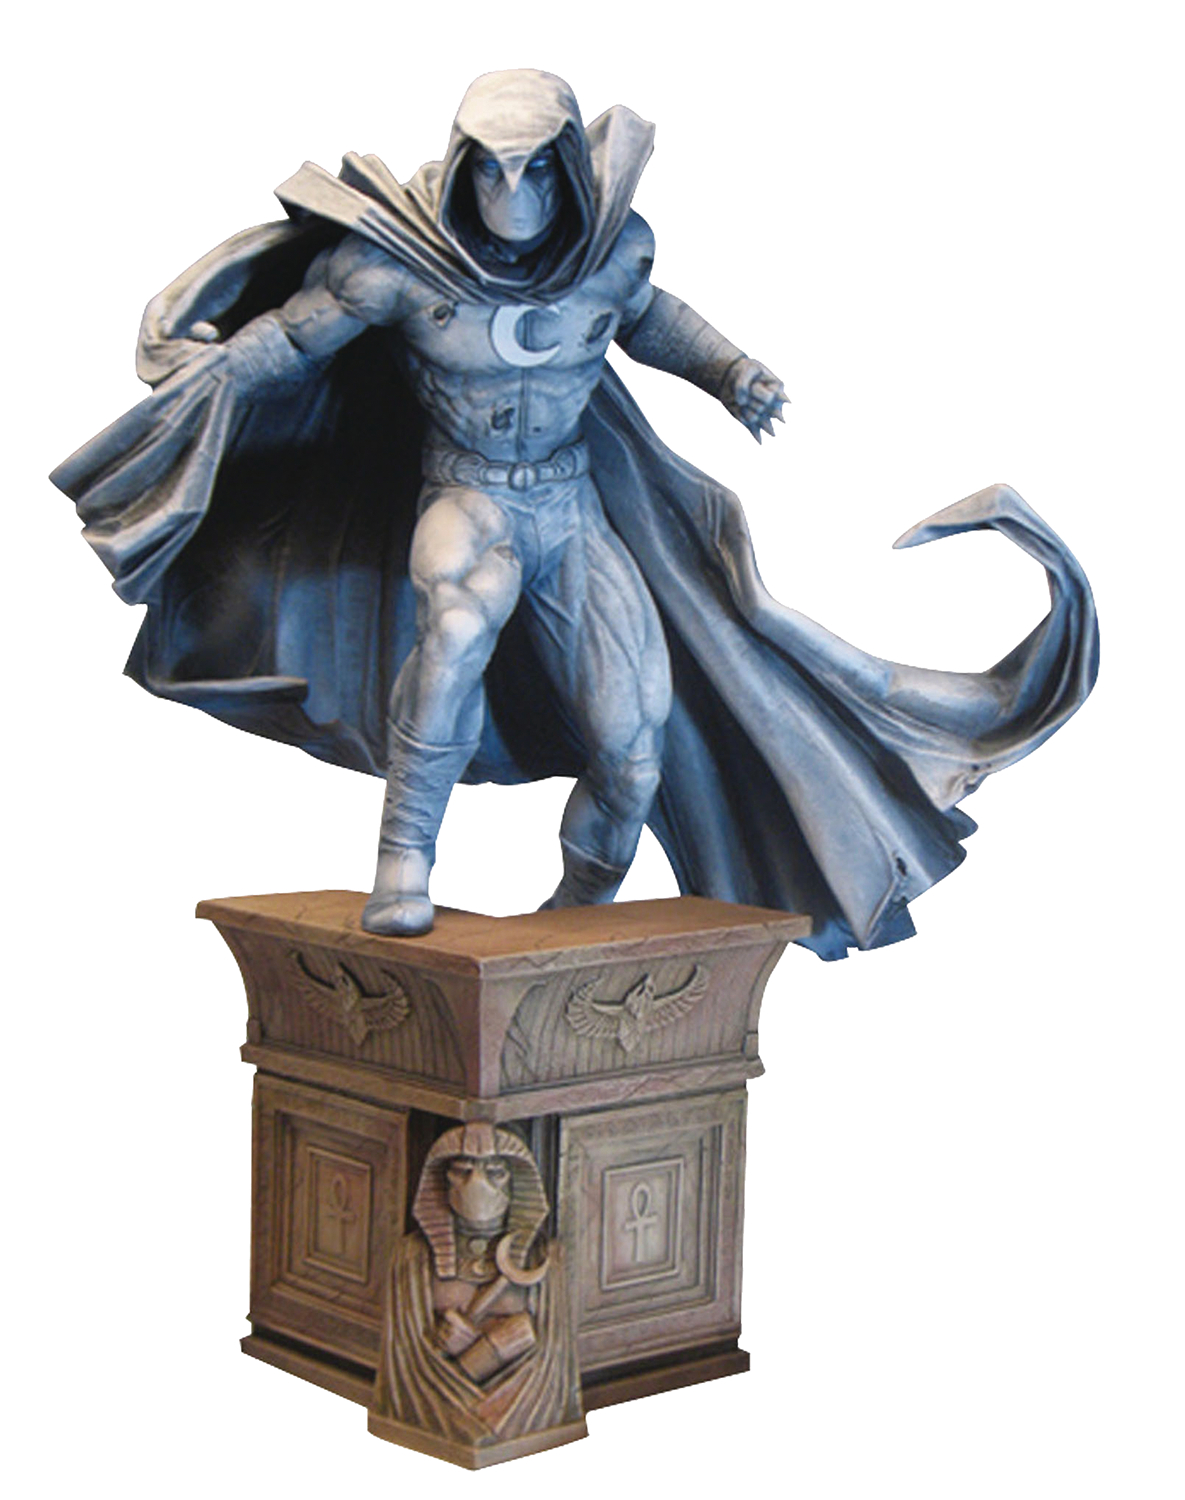 MARVEL PREMIER MOON KNIGHT STATUE